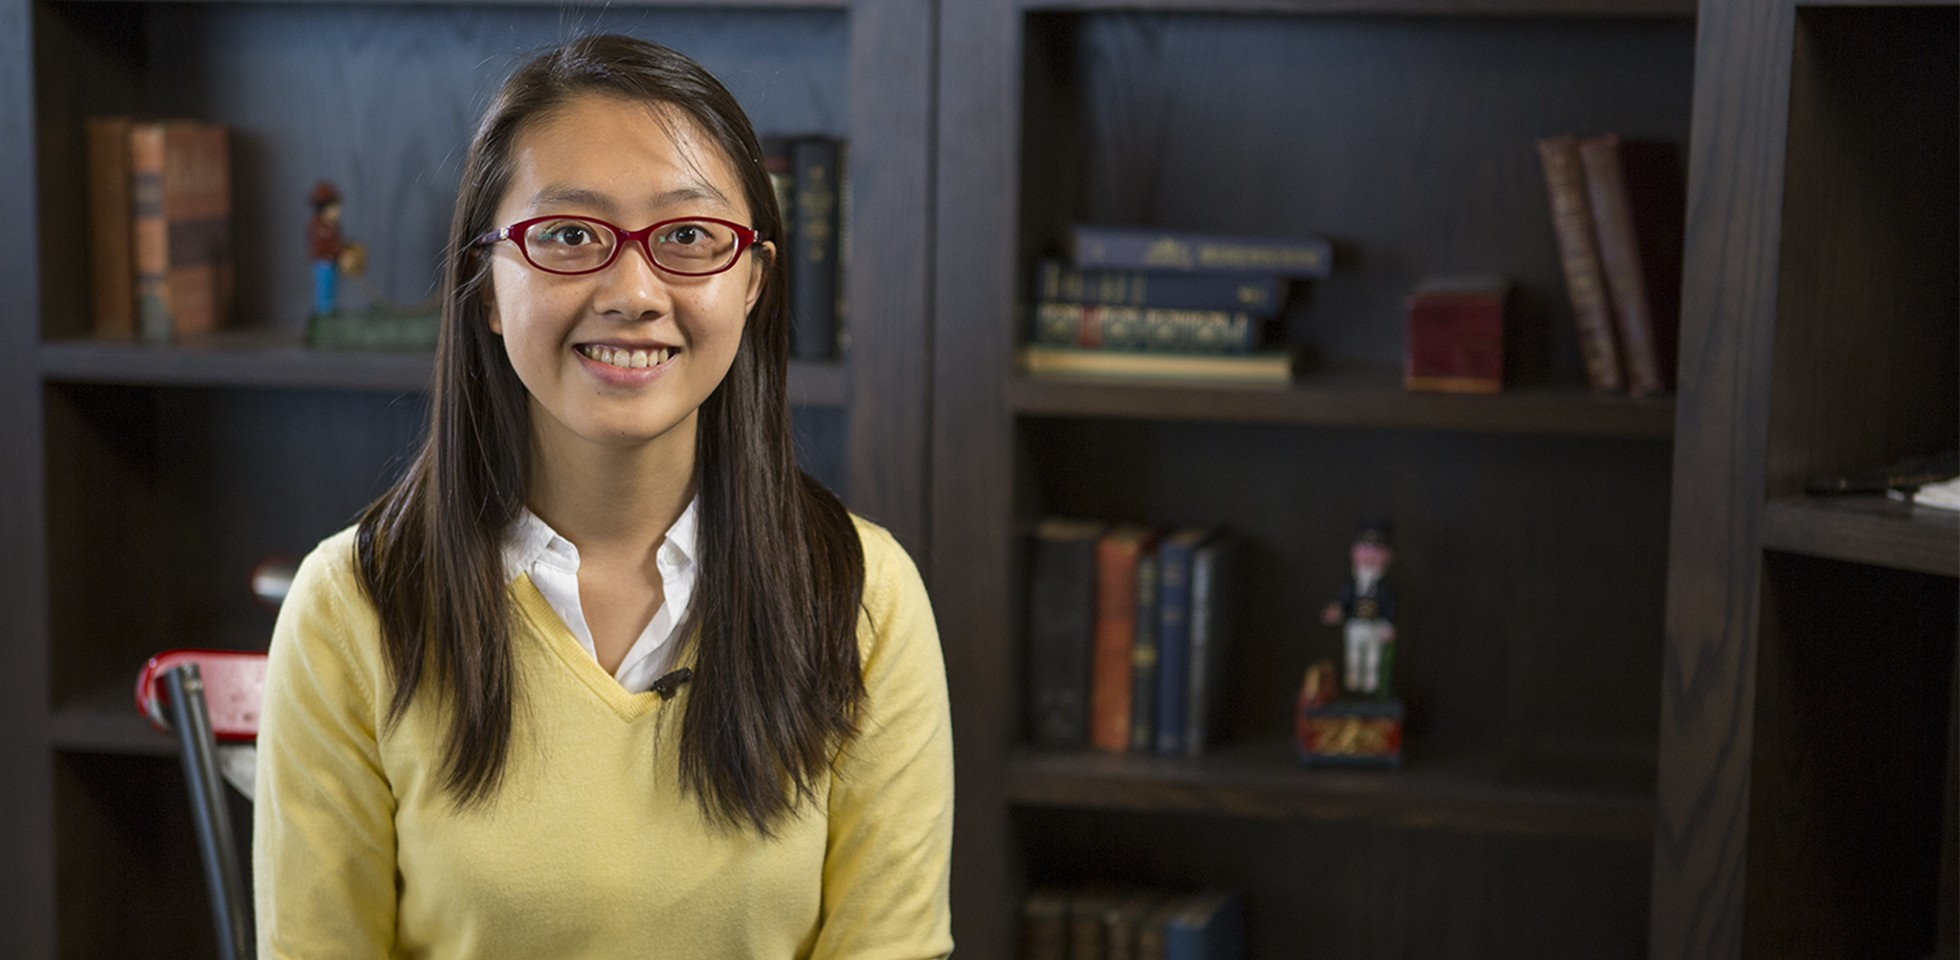 Emma Shen, Data Scientist - Capital One Careers